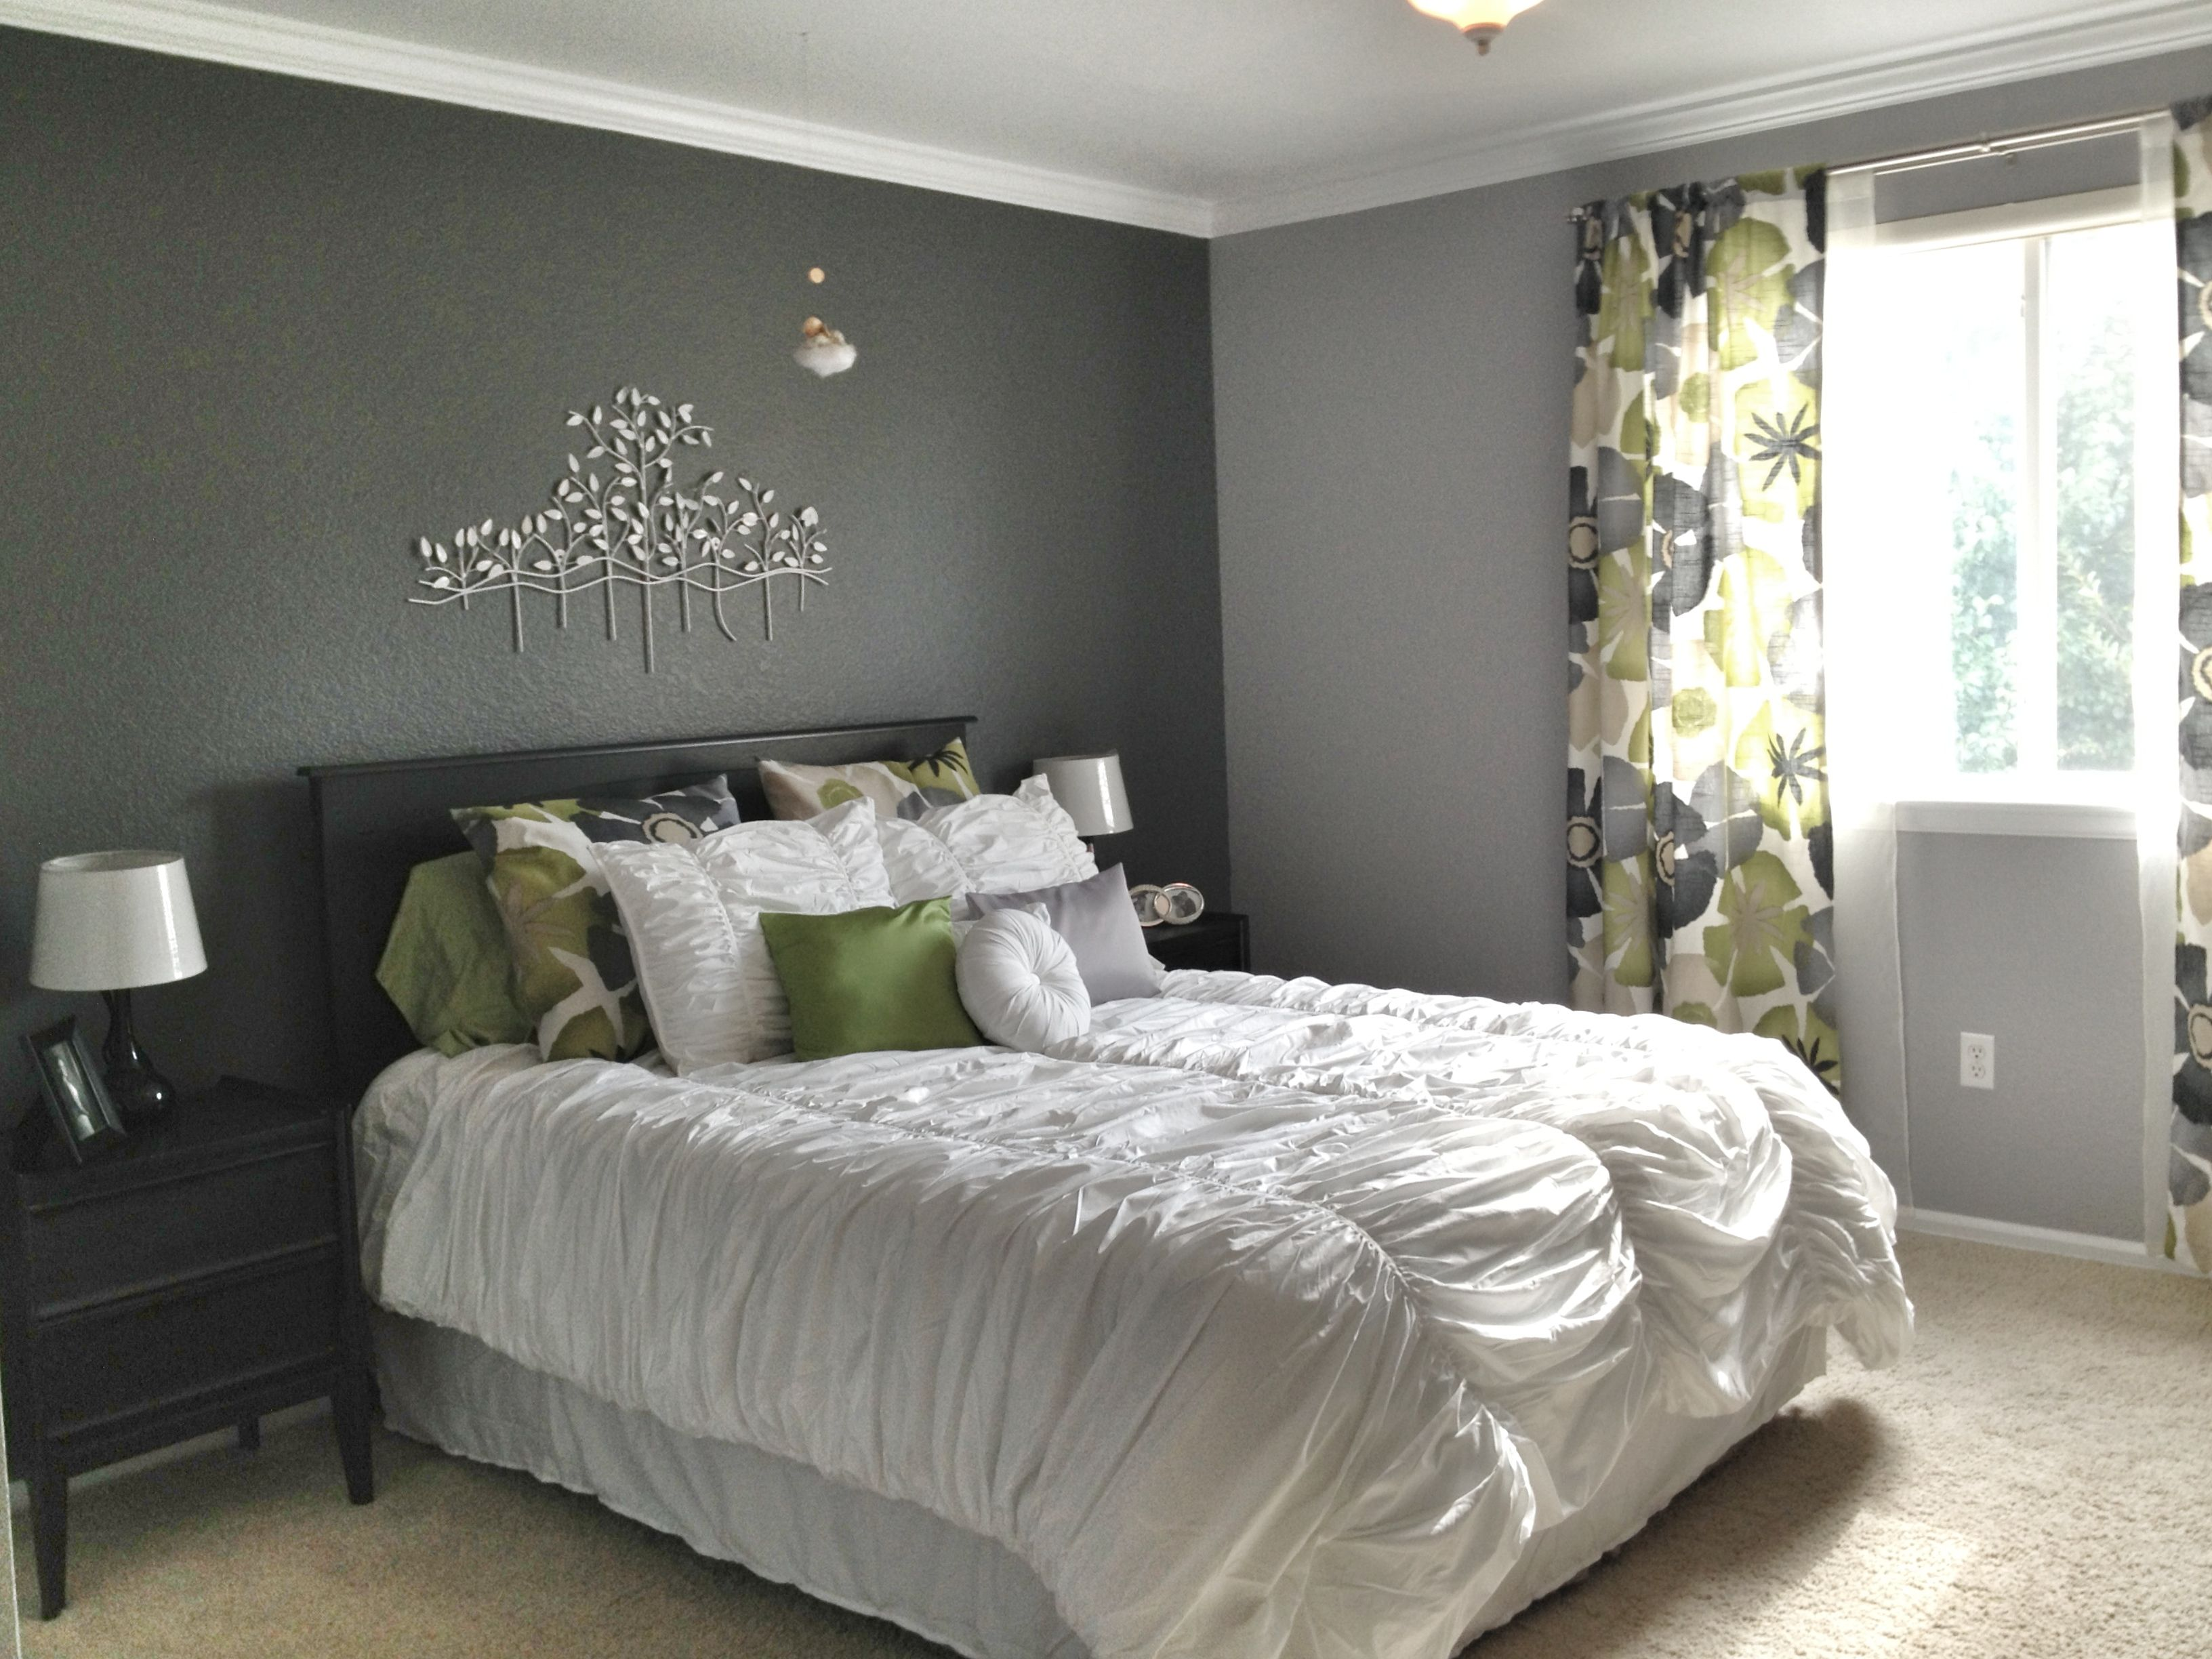 dark bedroom wall idea Grey Master Bedroom - dark accent wall, fun patterned curtains (with matching shams), and bright